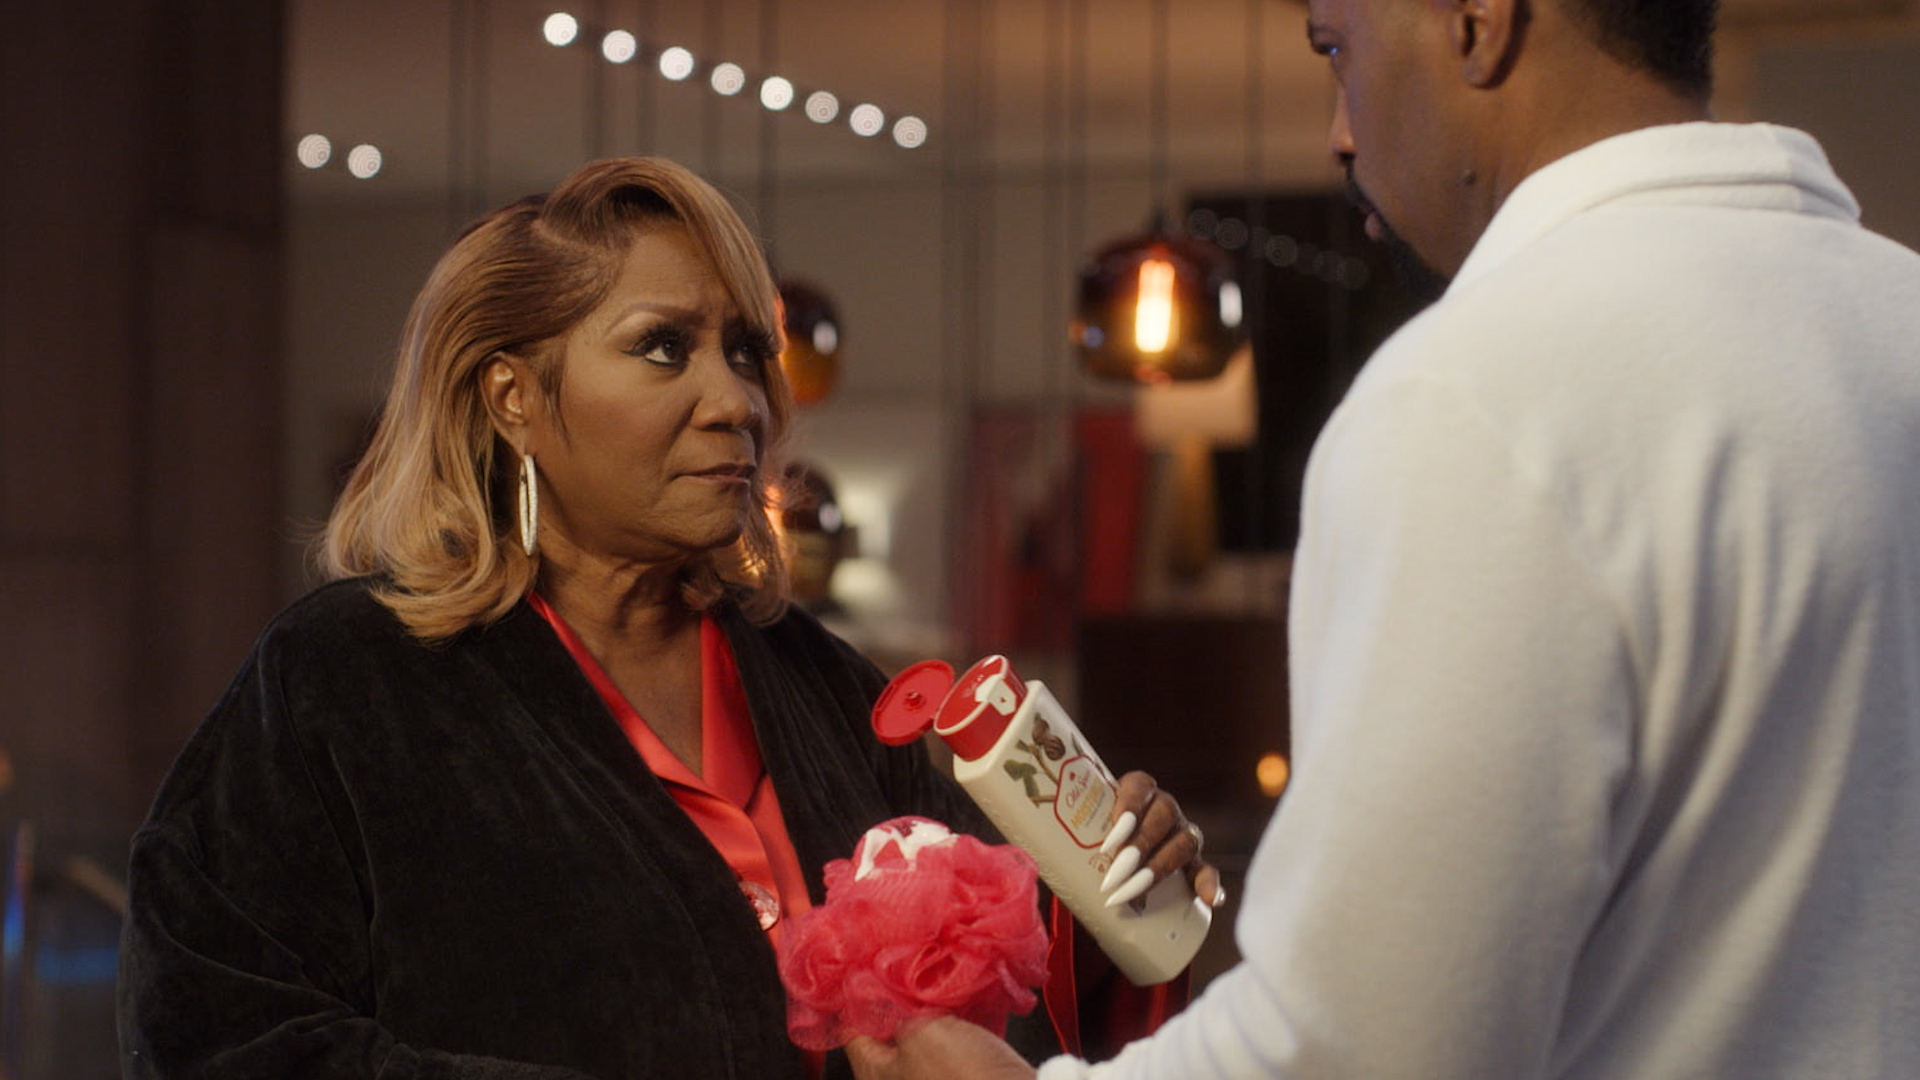 Patti LaBelle Joins Deon Cole & Gabrielle Dennis In New 'Old Spice' Commercial